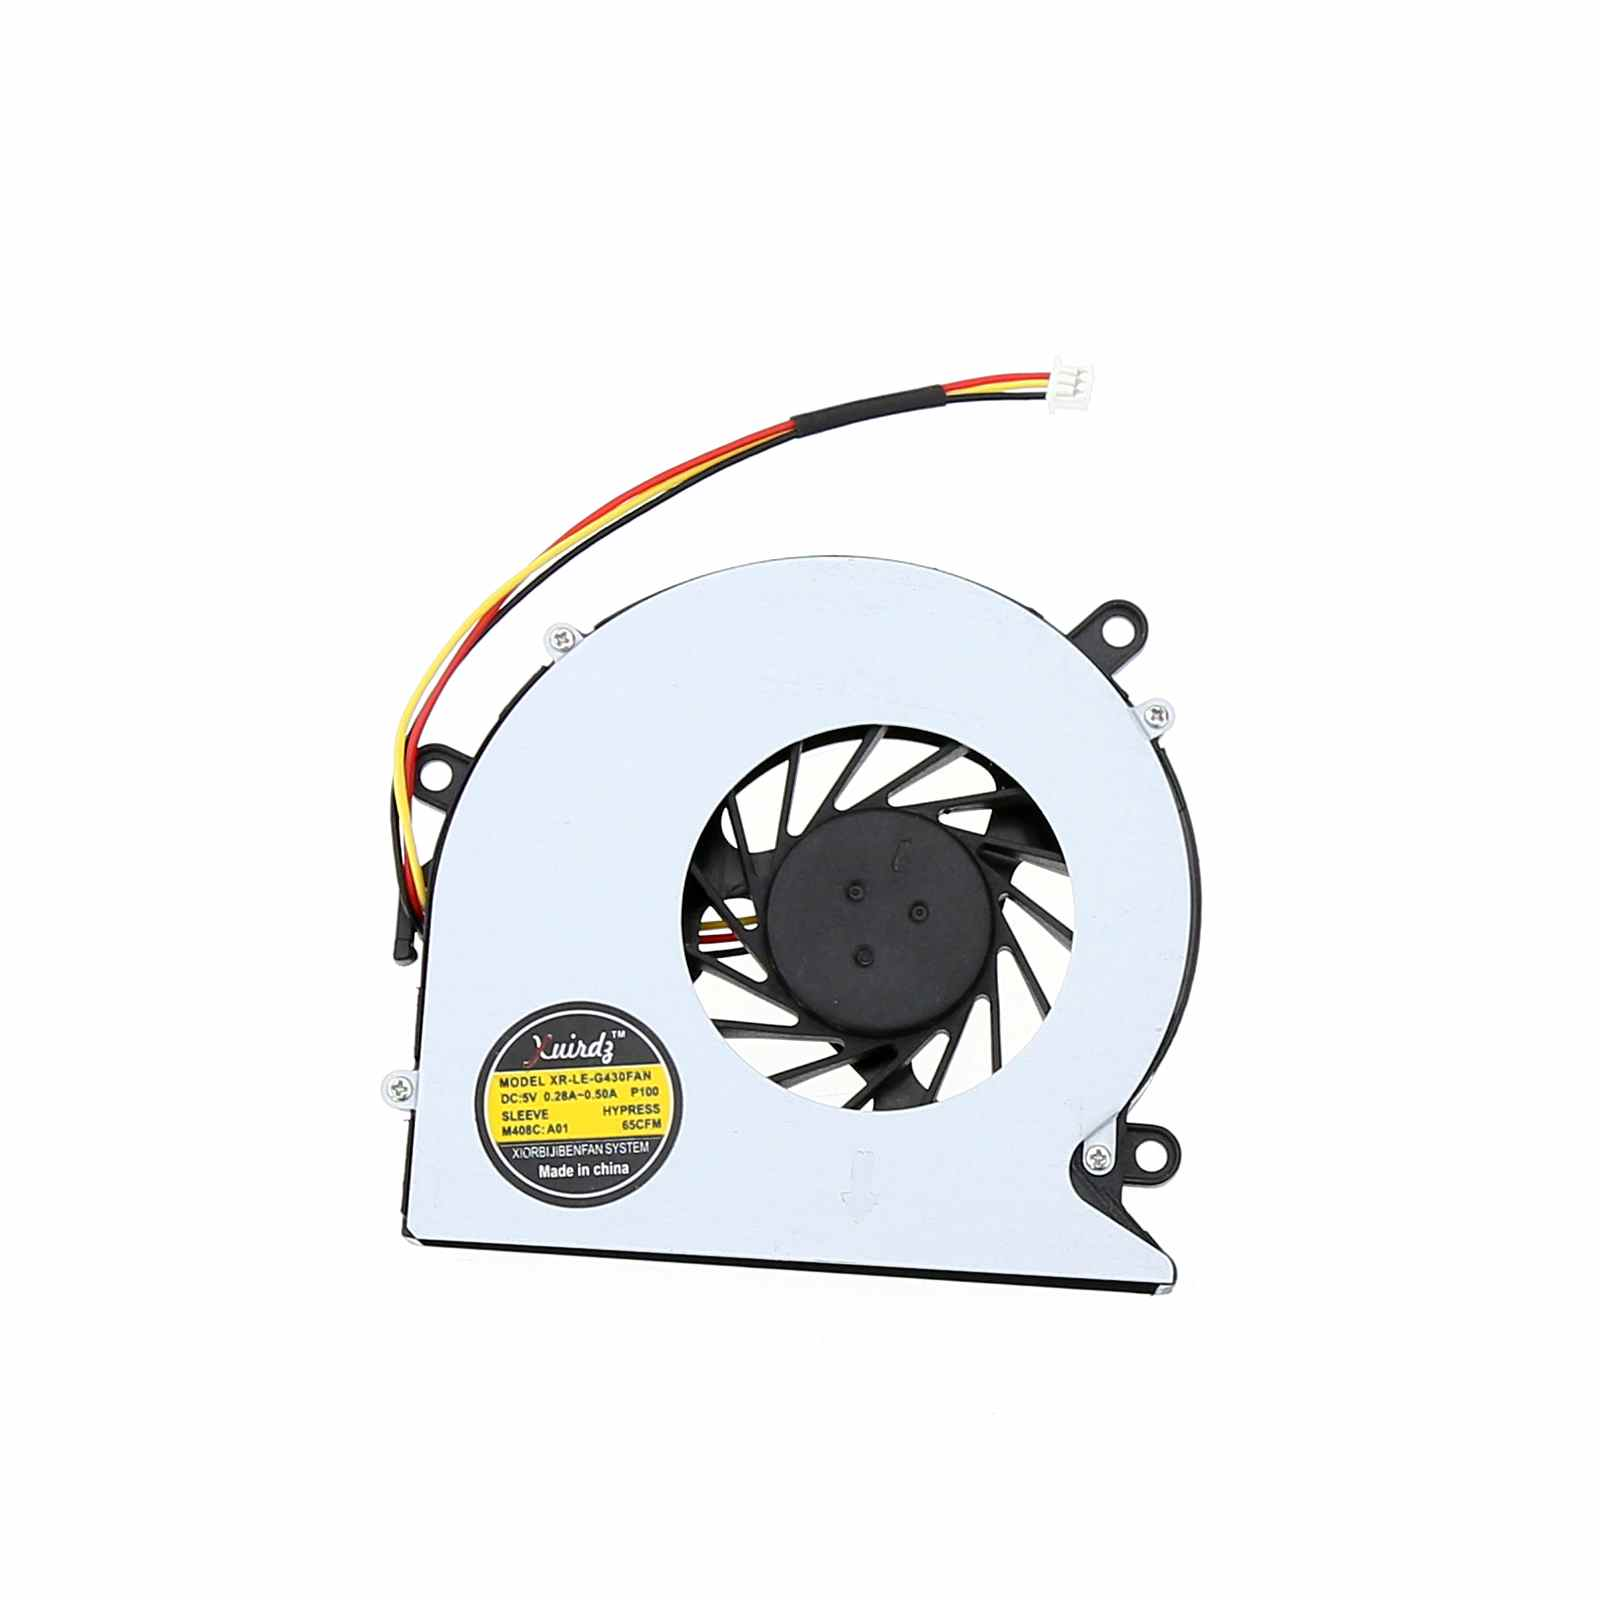 Brand New and original CPU cooling fan for Acer Aspire 5520 5315 5220 5520 5720 7220 7520 7720 laptop fan original new al12b32 laptop battery for acer aspire one 725 756 v5 171 b113 b113m al12x32 al12a31 al12b31 al12b32 2500mah